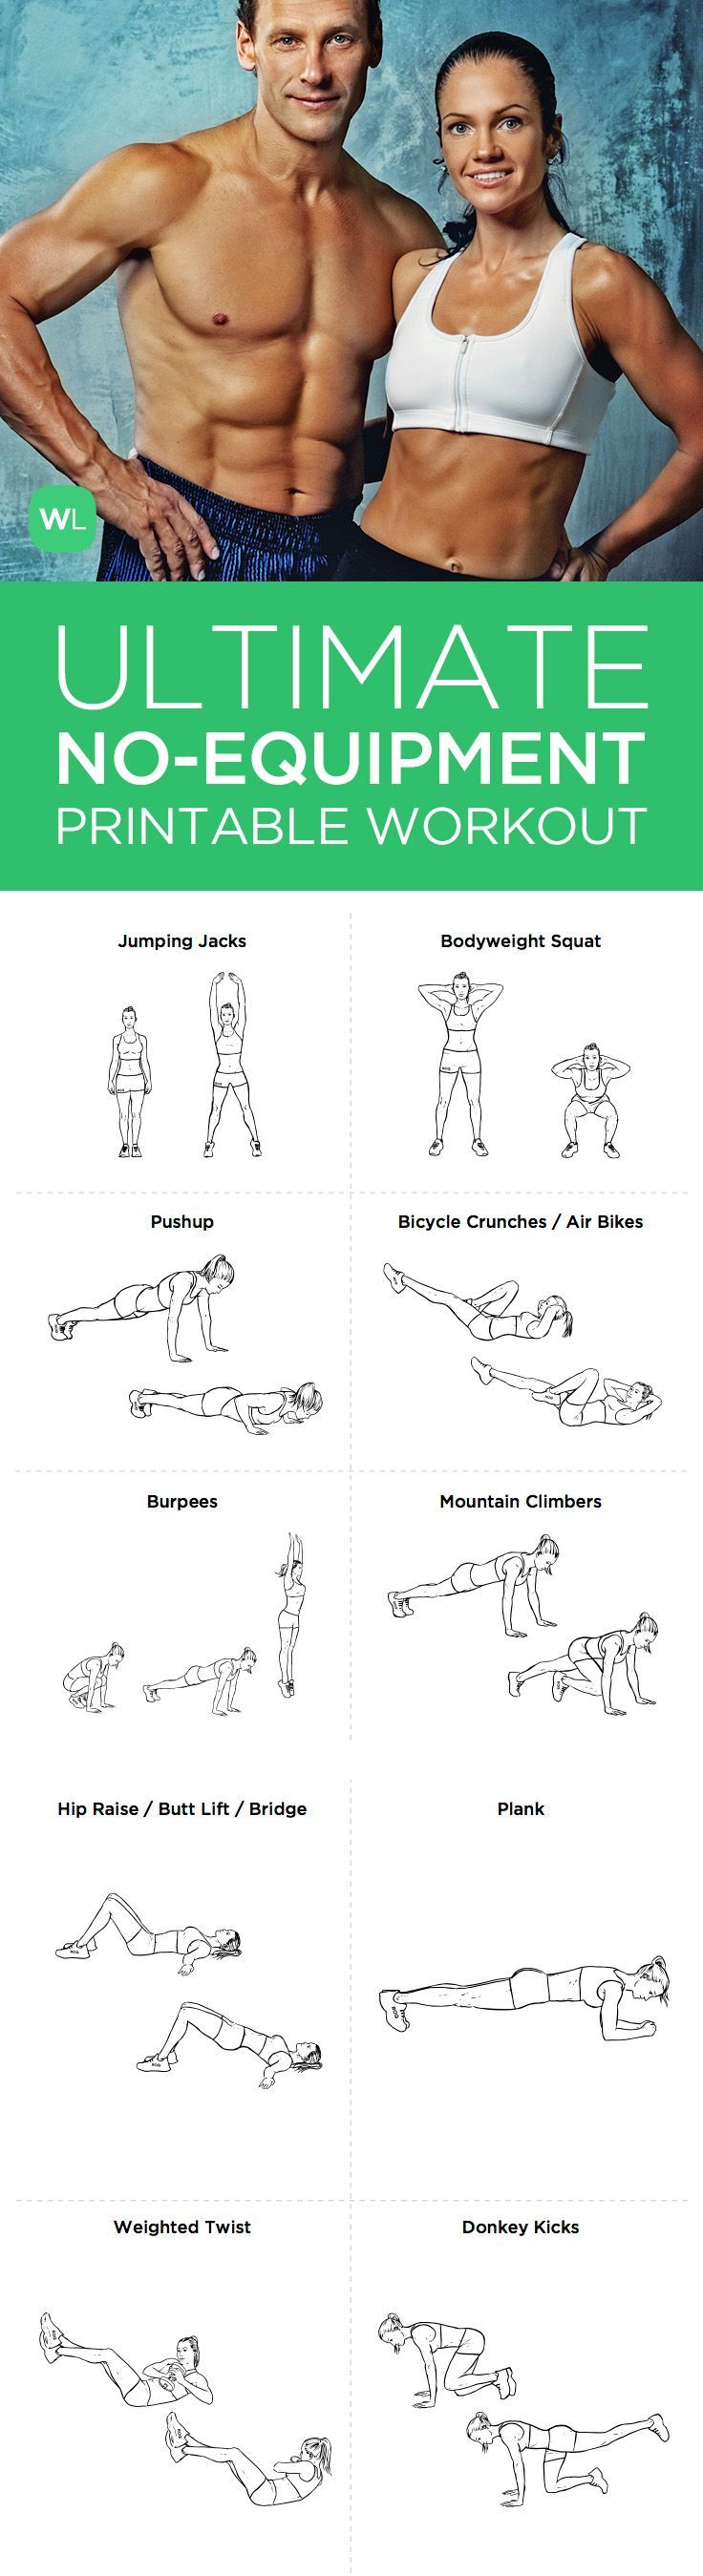 Need A Good Full Body Home Based Workout That Doesnt Require Gym Equipment Try This Intense Two Page Bodyweight You Can Do Anywhere